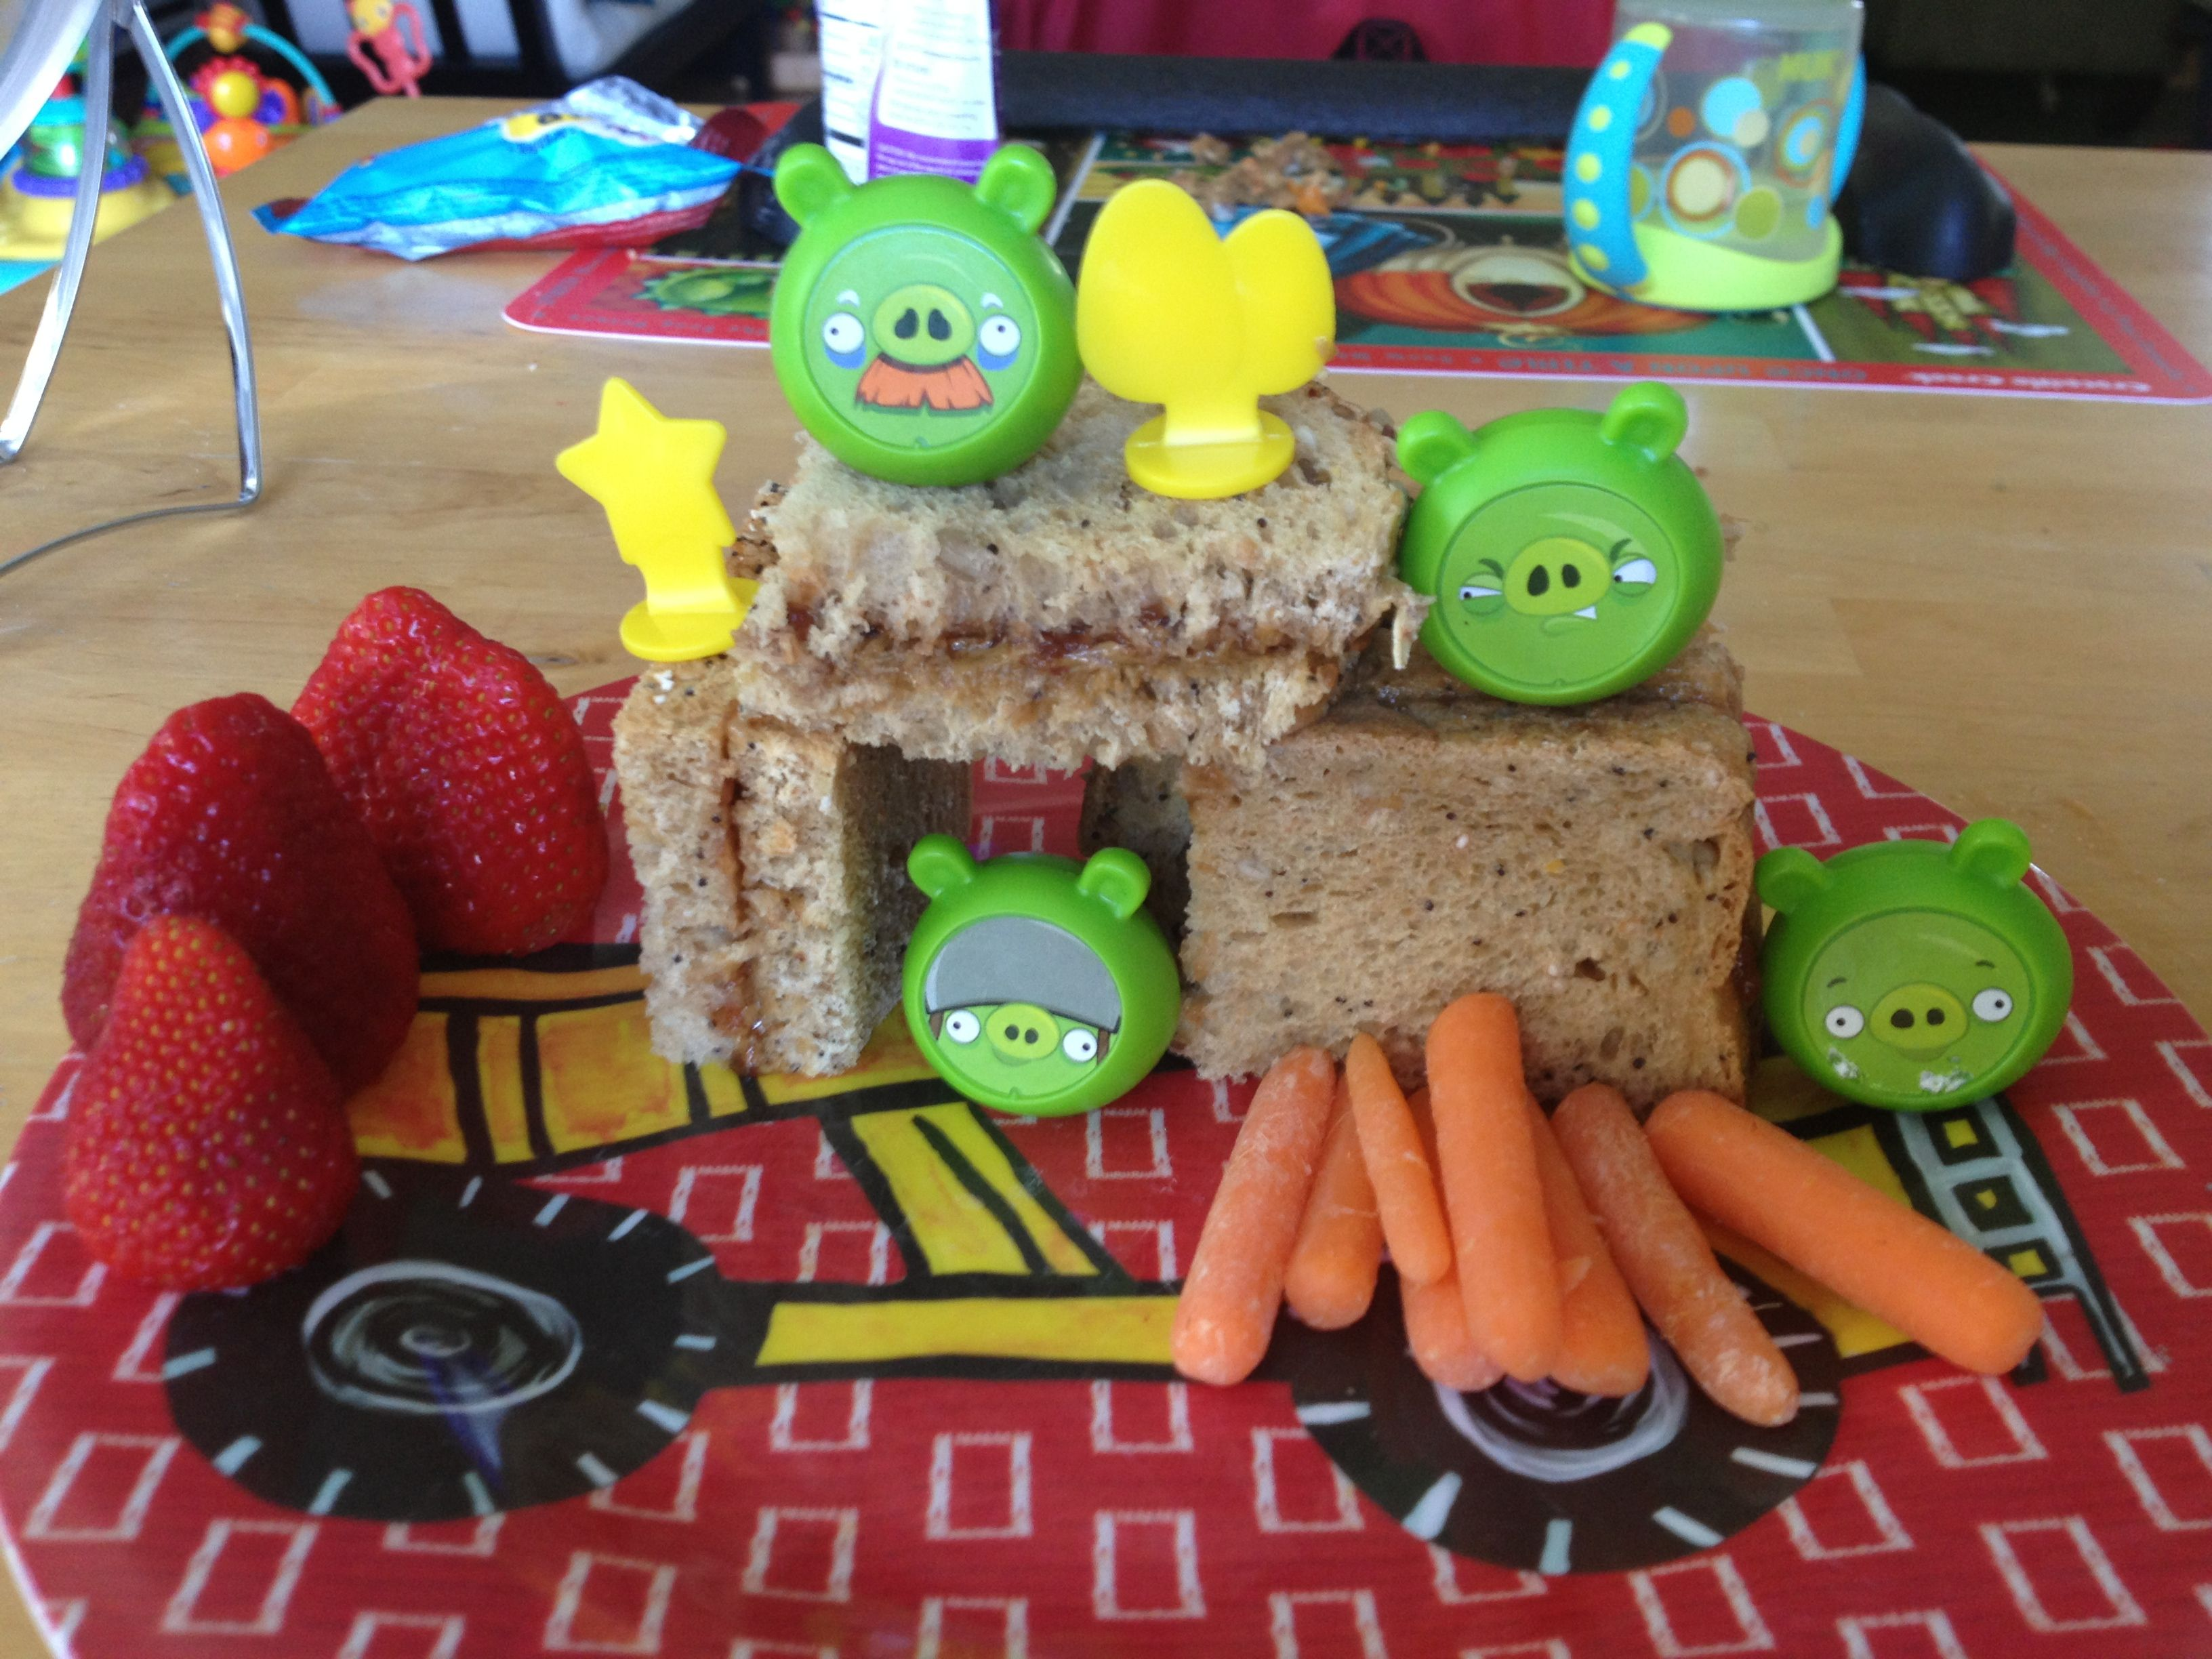 Who says you can't play with your food? Angry Birds lunch!